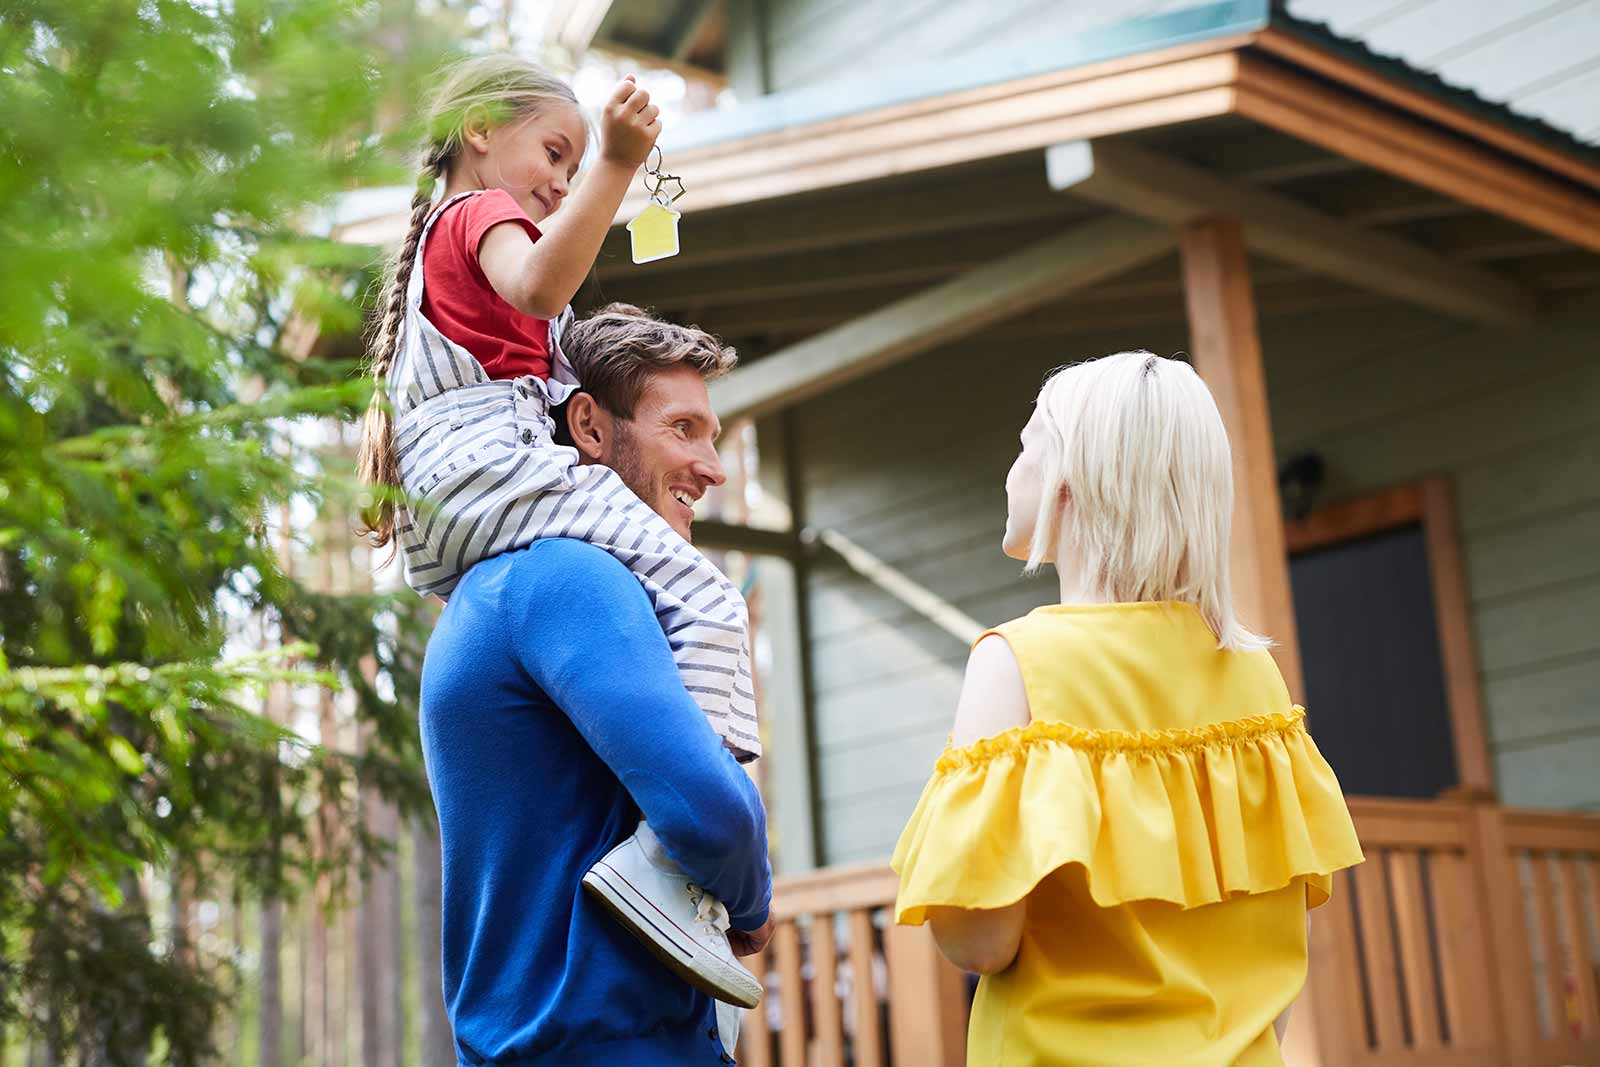 Finding the right house for your family: family in front of house